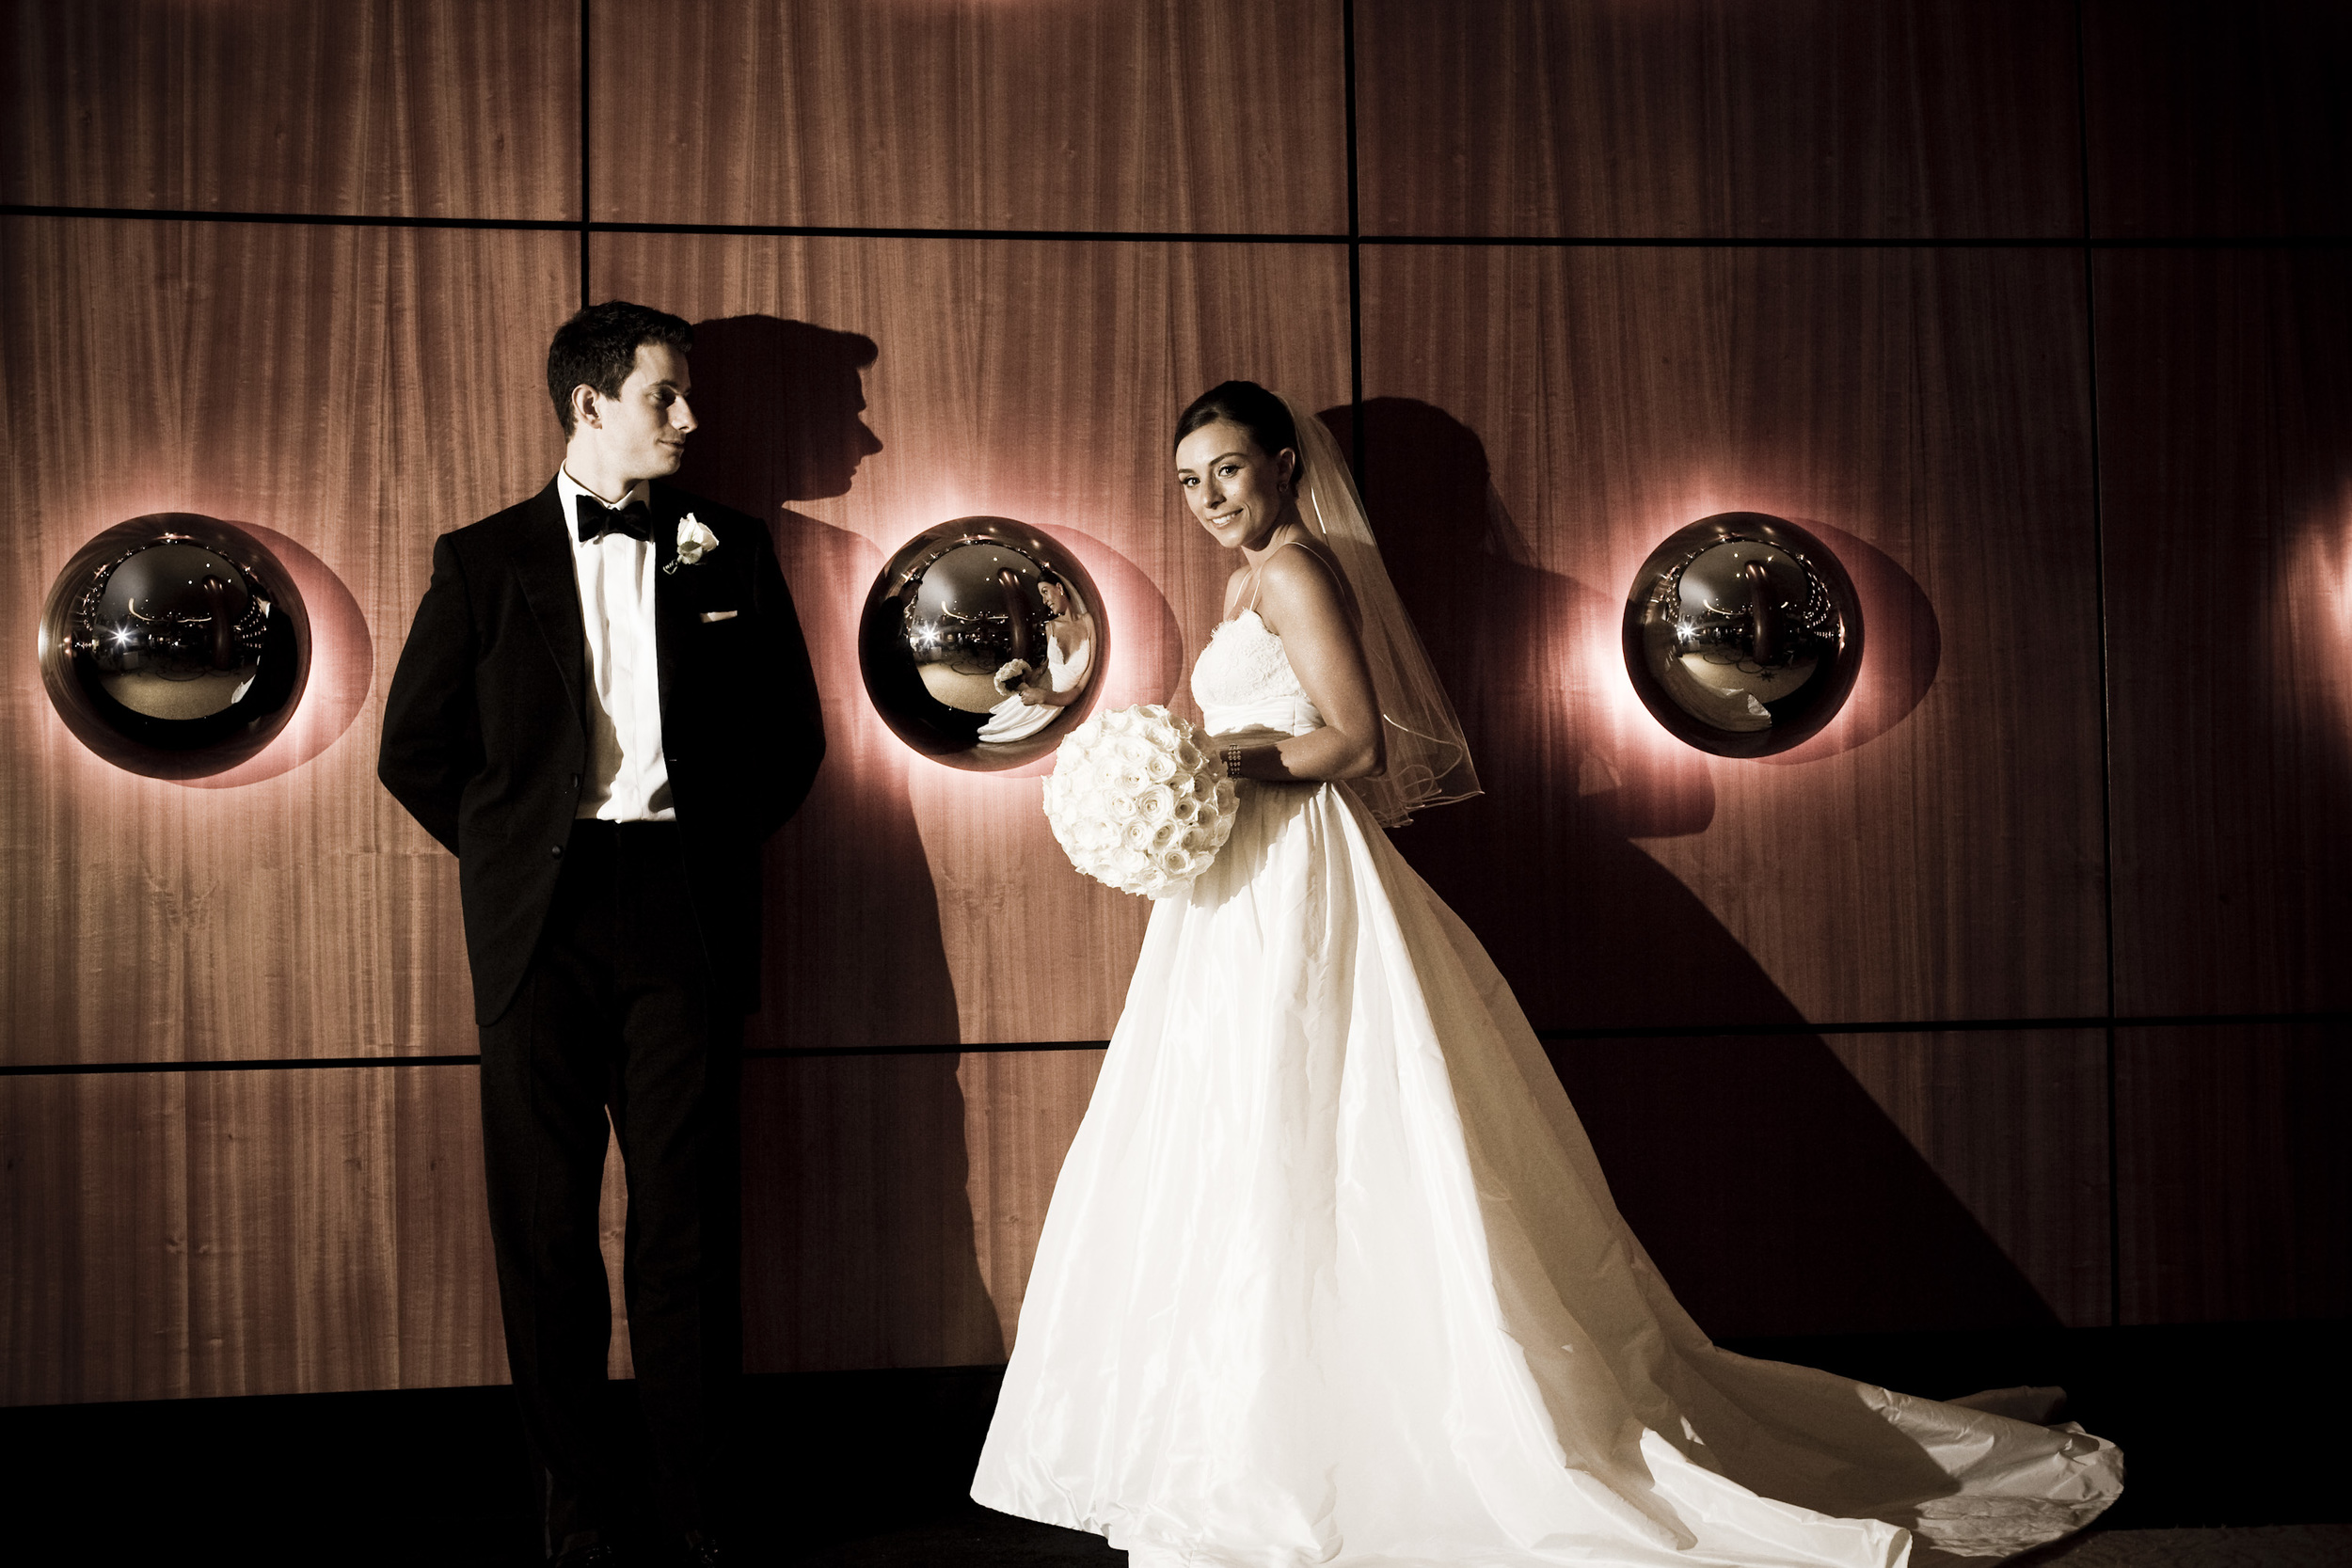 012_orlando_wedding_photographer_brian_adams_photographics.jpg